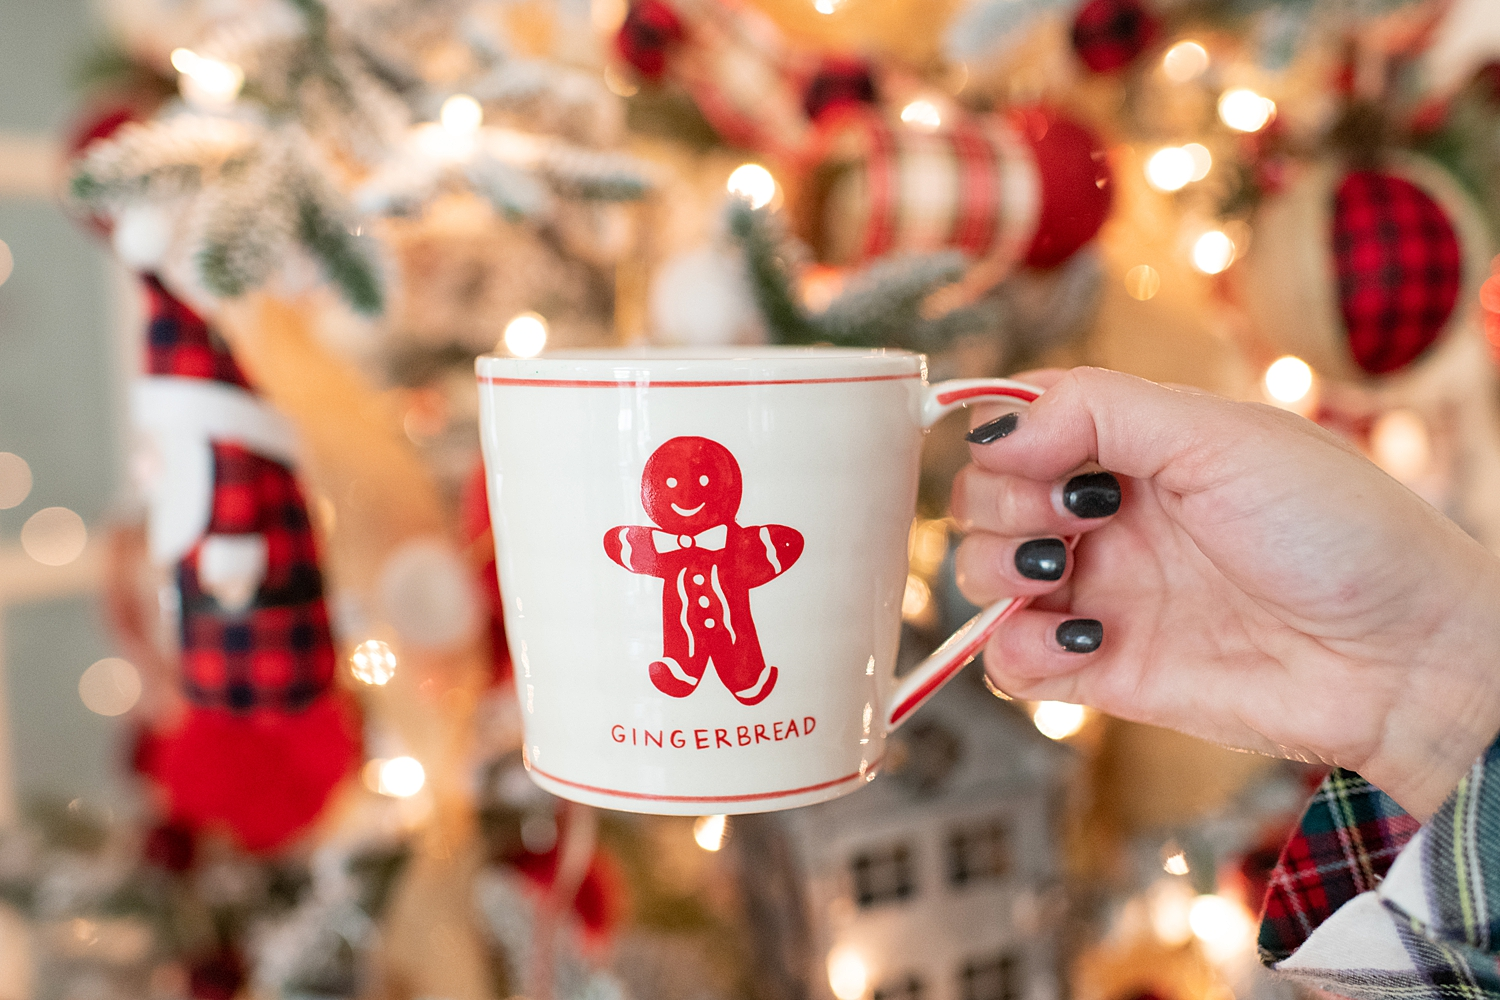 "Holiday Pjs & Top Macy's Christmas Gifts featured by top Houston life and style blog, Fancy Ashley"" image of a Christmas mug available at Macy's"